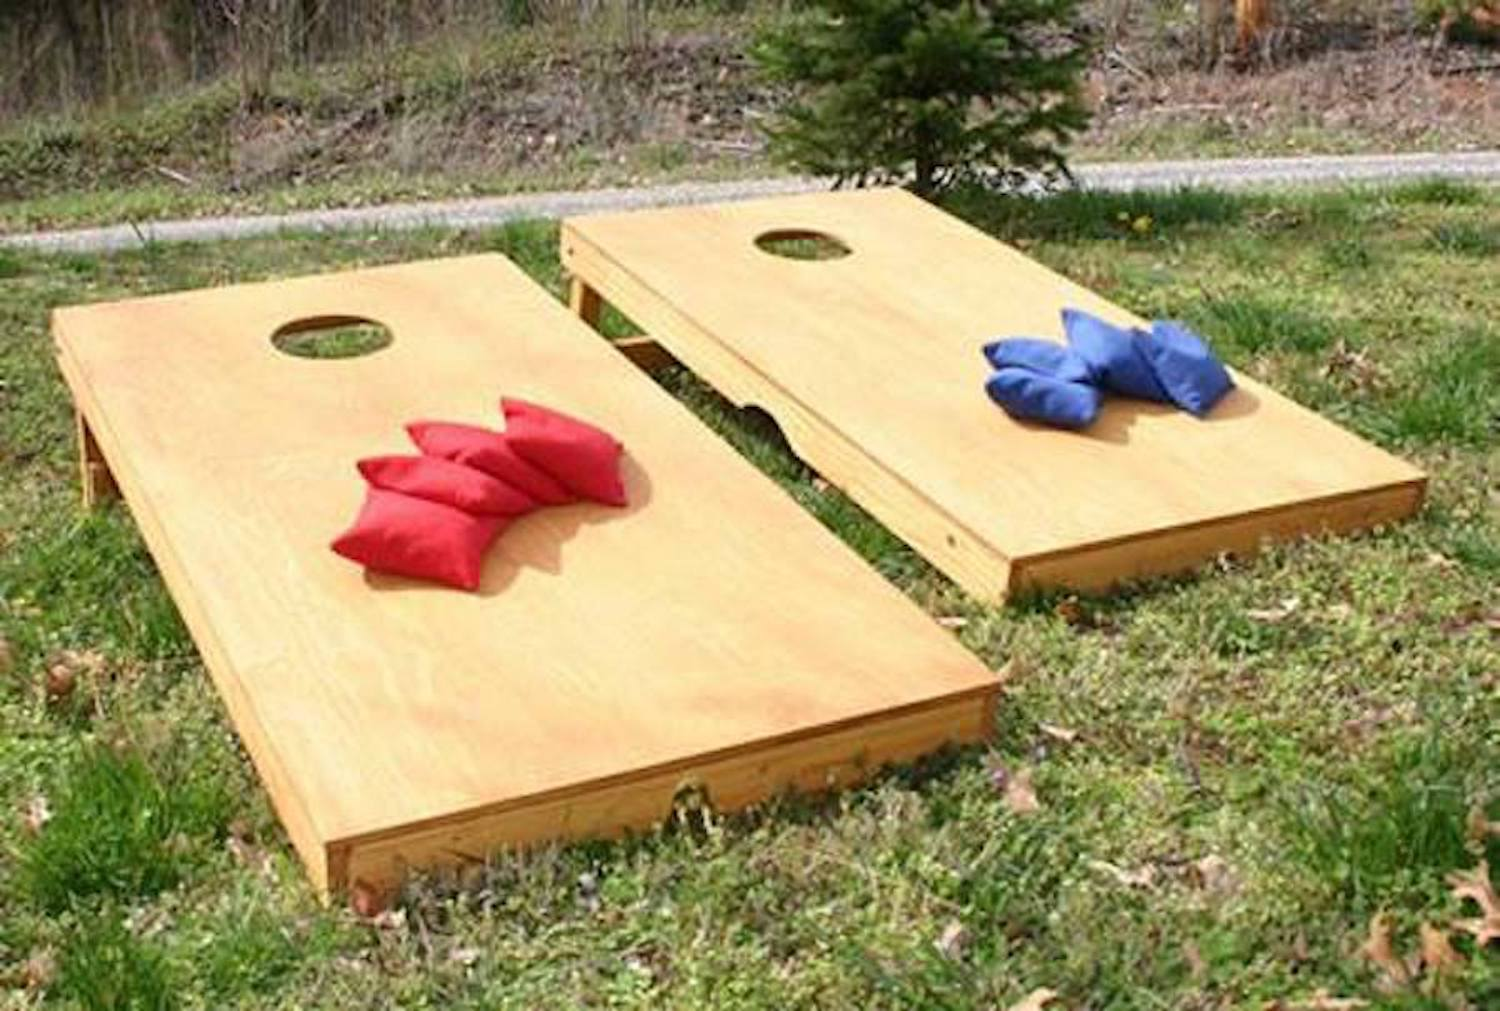 bean bag toss boards.jpg